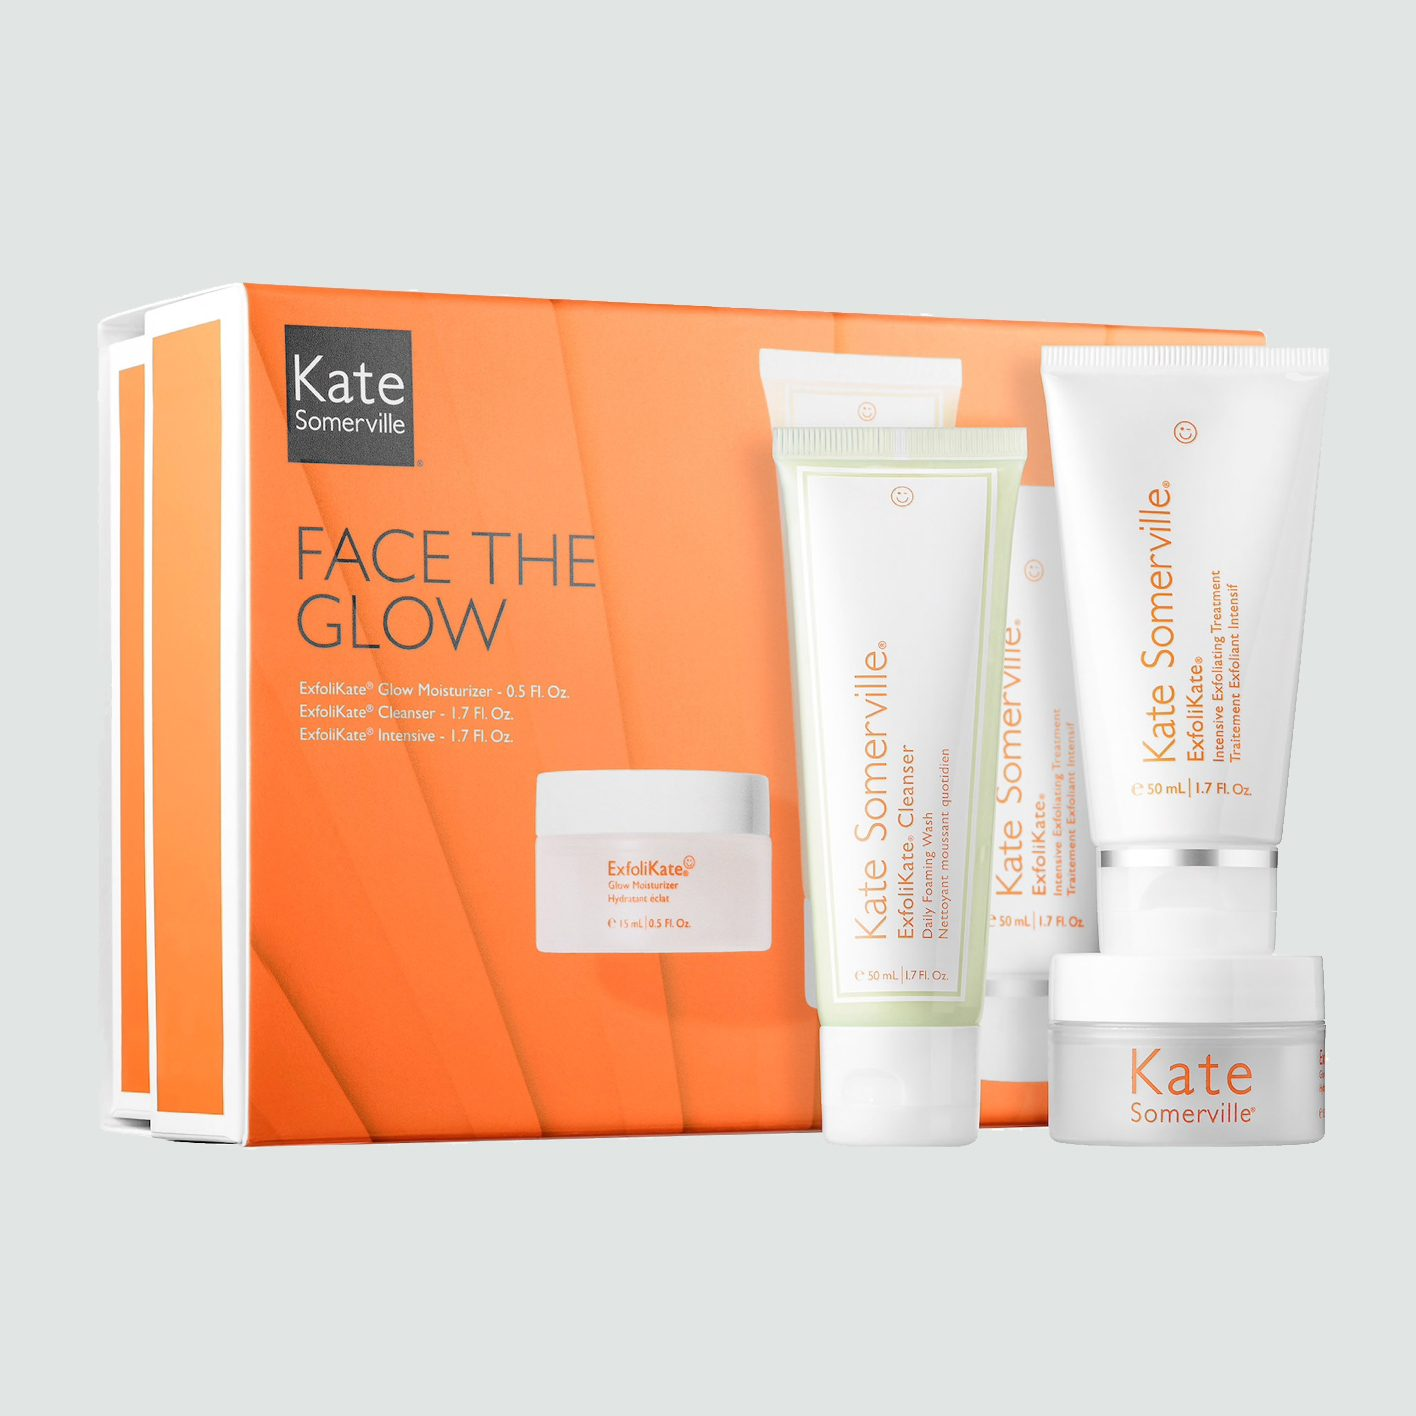 Kate Somerville Face the Glow